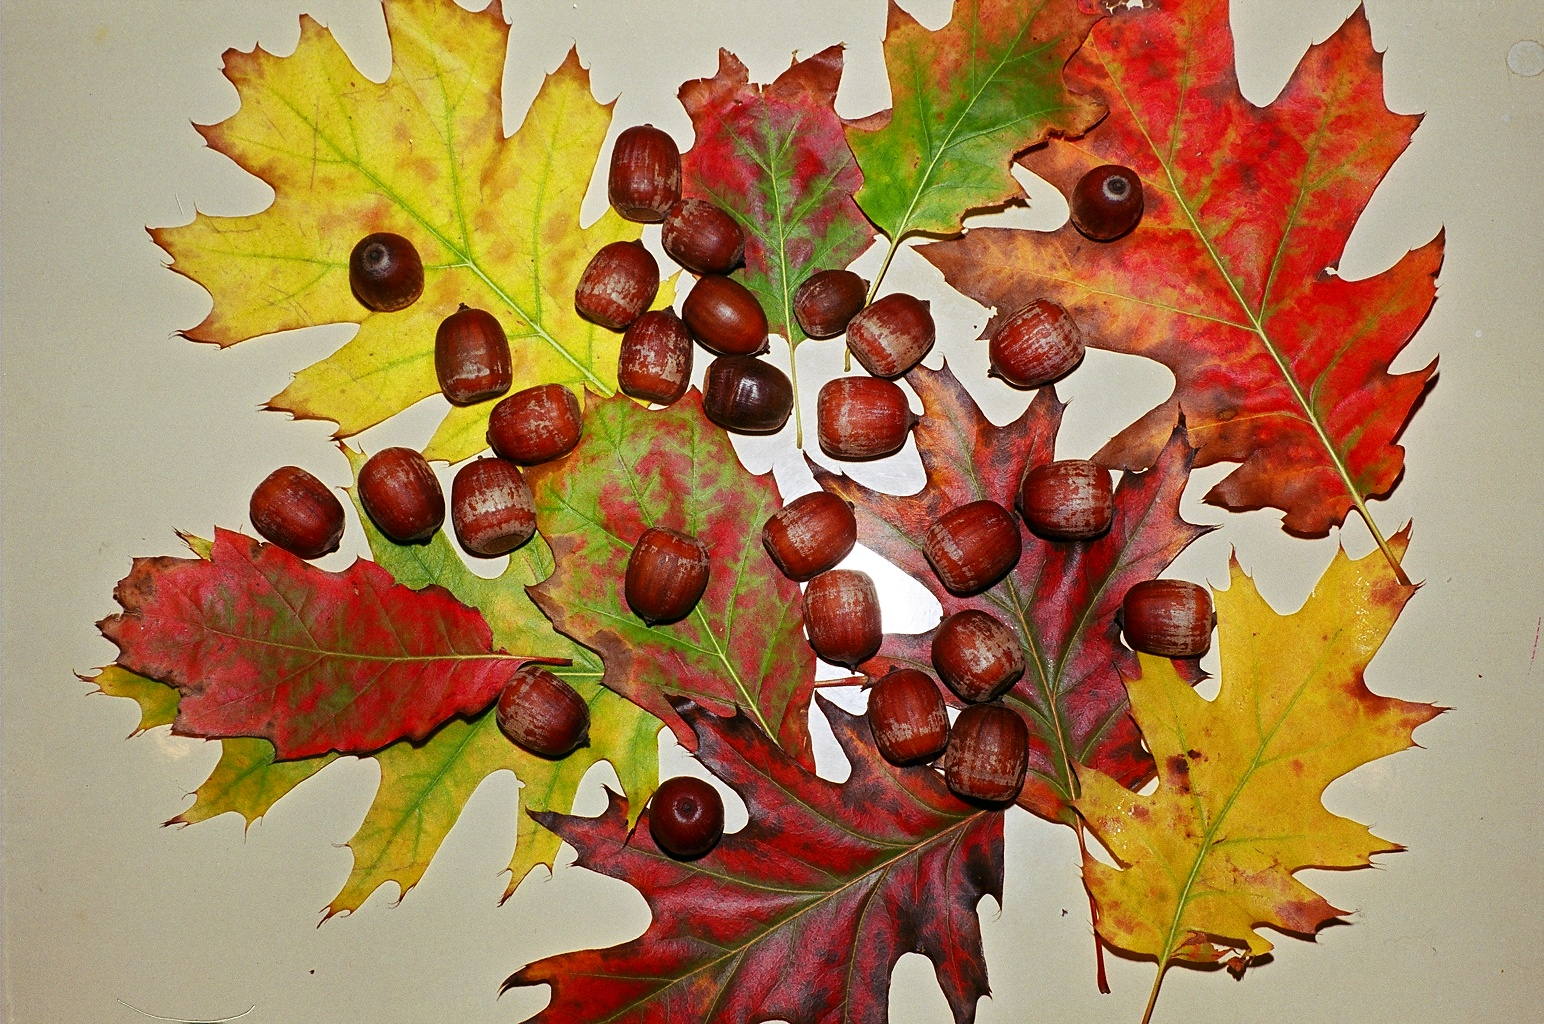 http://upload.wikimedia.org/wikipedia/commons/6/68/Fall_leaves_and_acorns.jpg